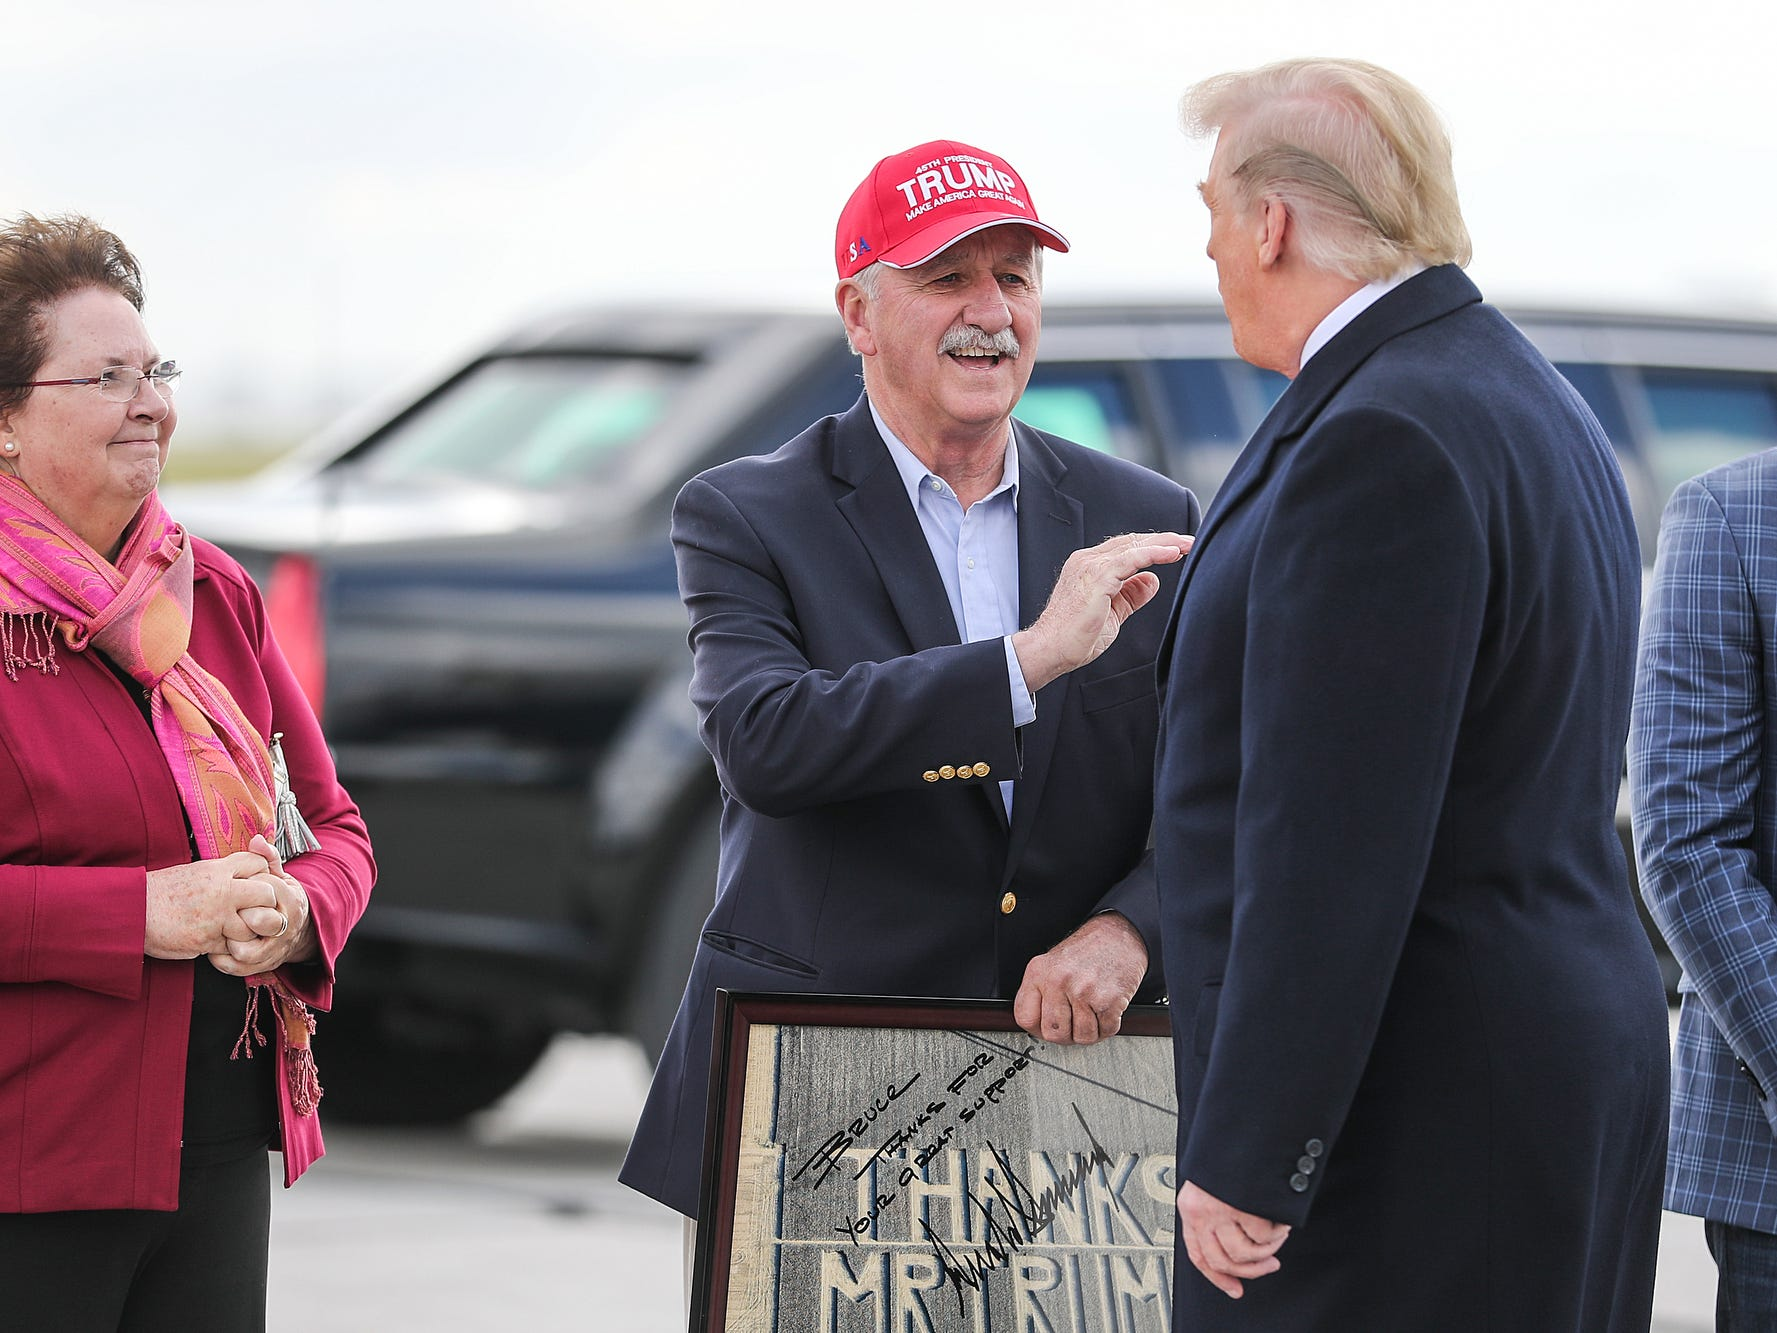 From right, United States President Donald Trump greets Bruce and Virginia Buchanan, owners of Buchanan Farms, on the tarmac at Indianapolis International Airport, where he arrived to speak at the annual Future Farmers of America Convention and Expo at Banker's Life Fieldhouse, Saturday, Oct. 27, 2018.